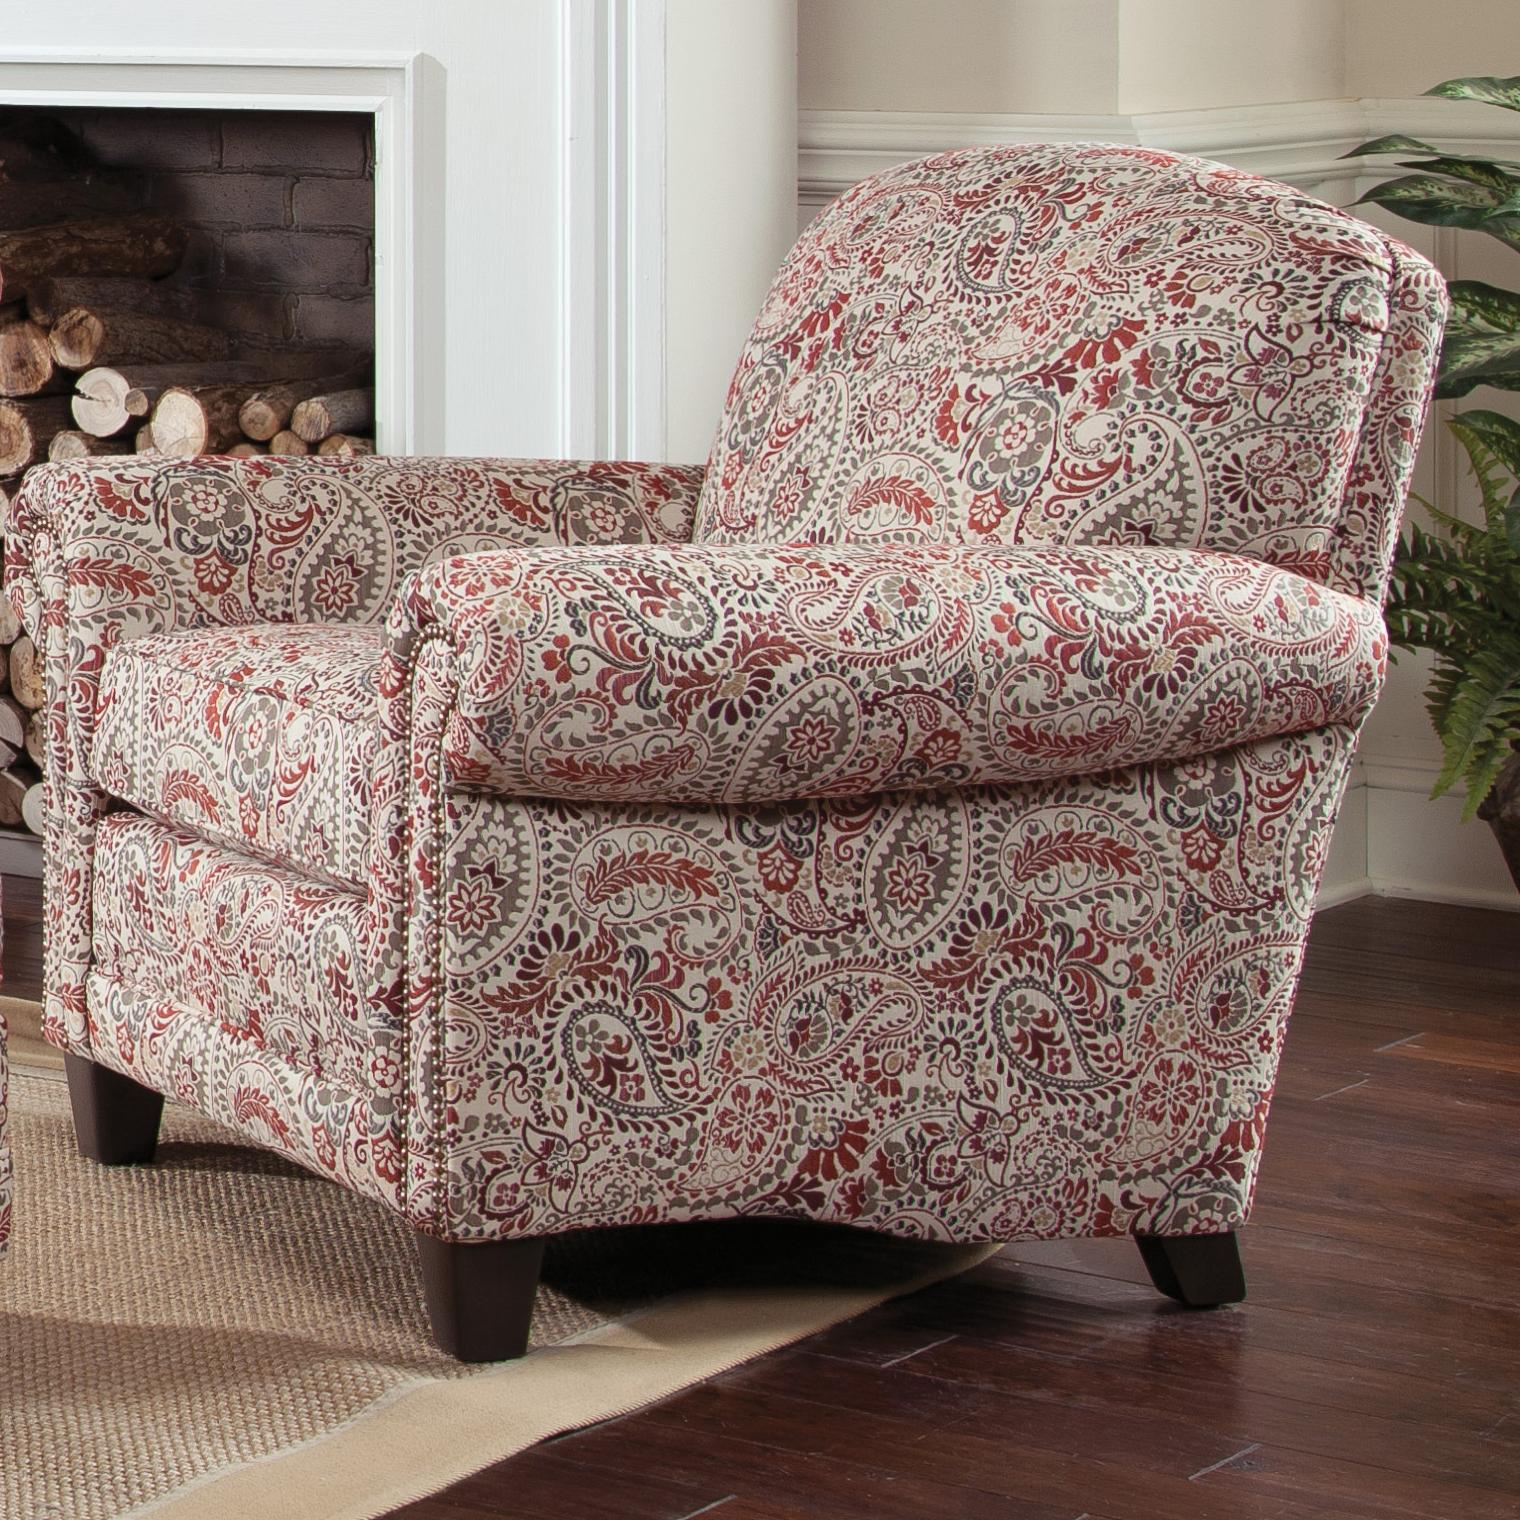 397 Upholstered Chair by Smith Brothers at Story & Lee Furniture